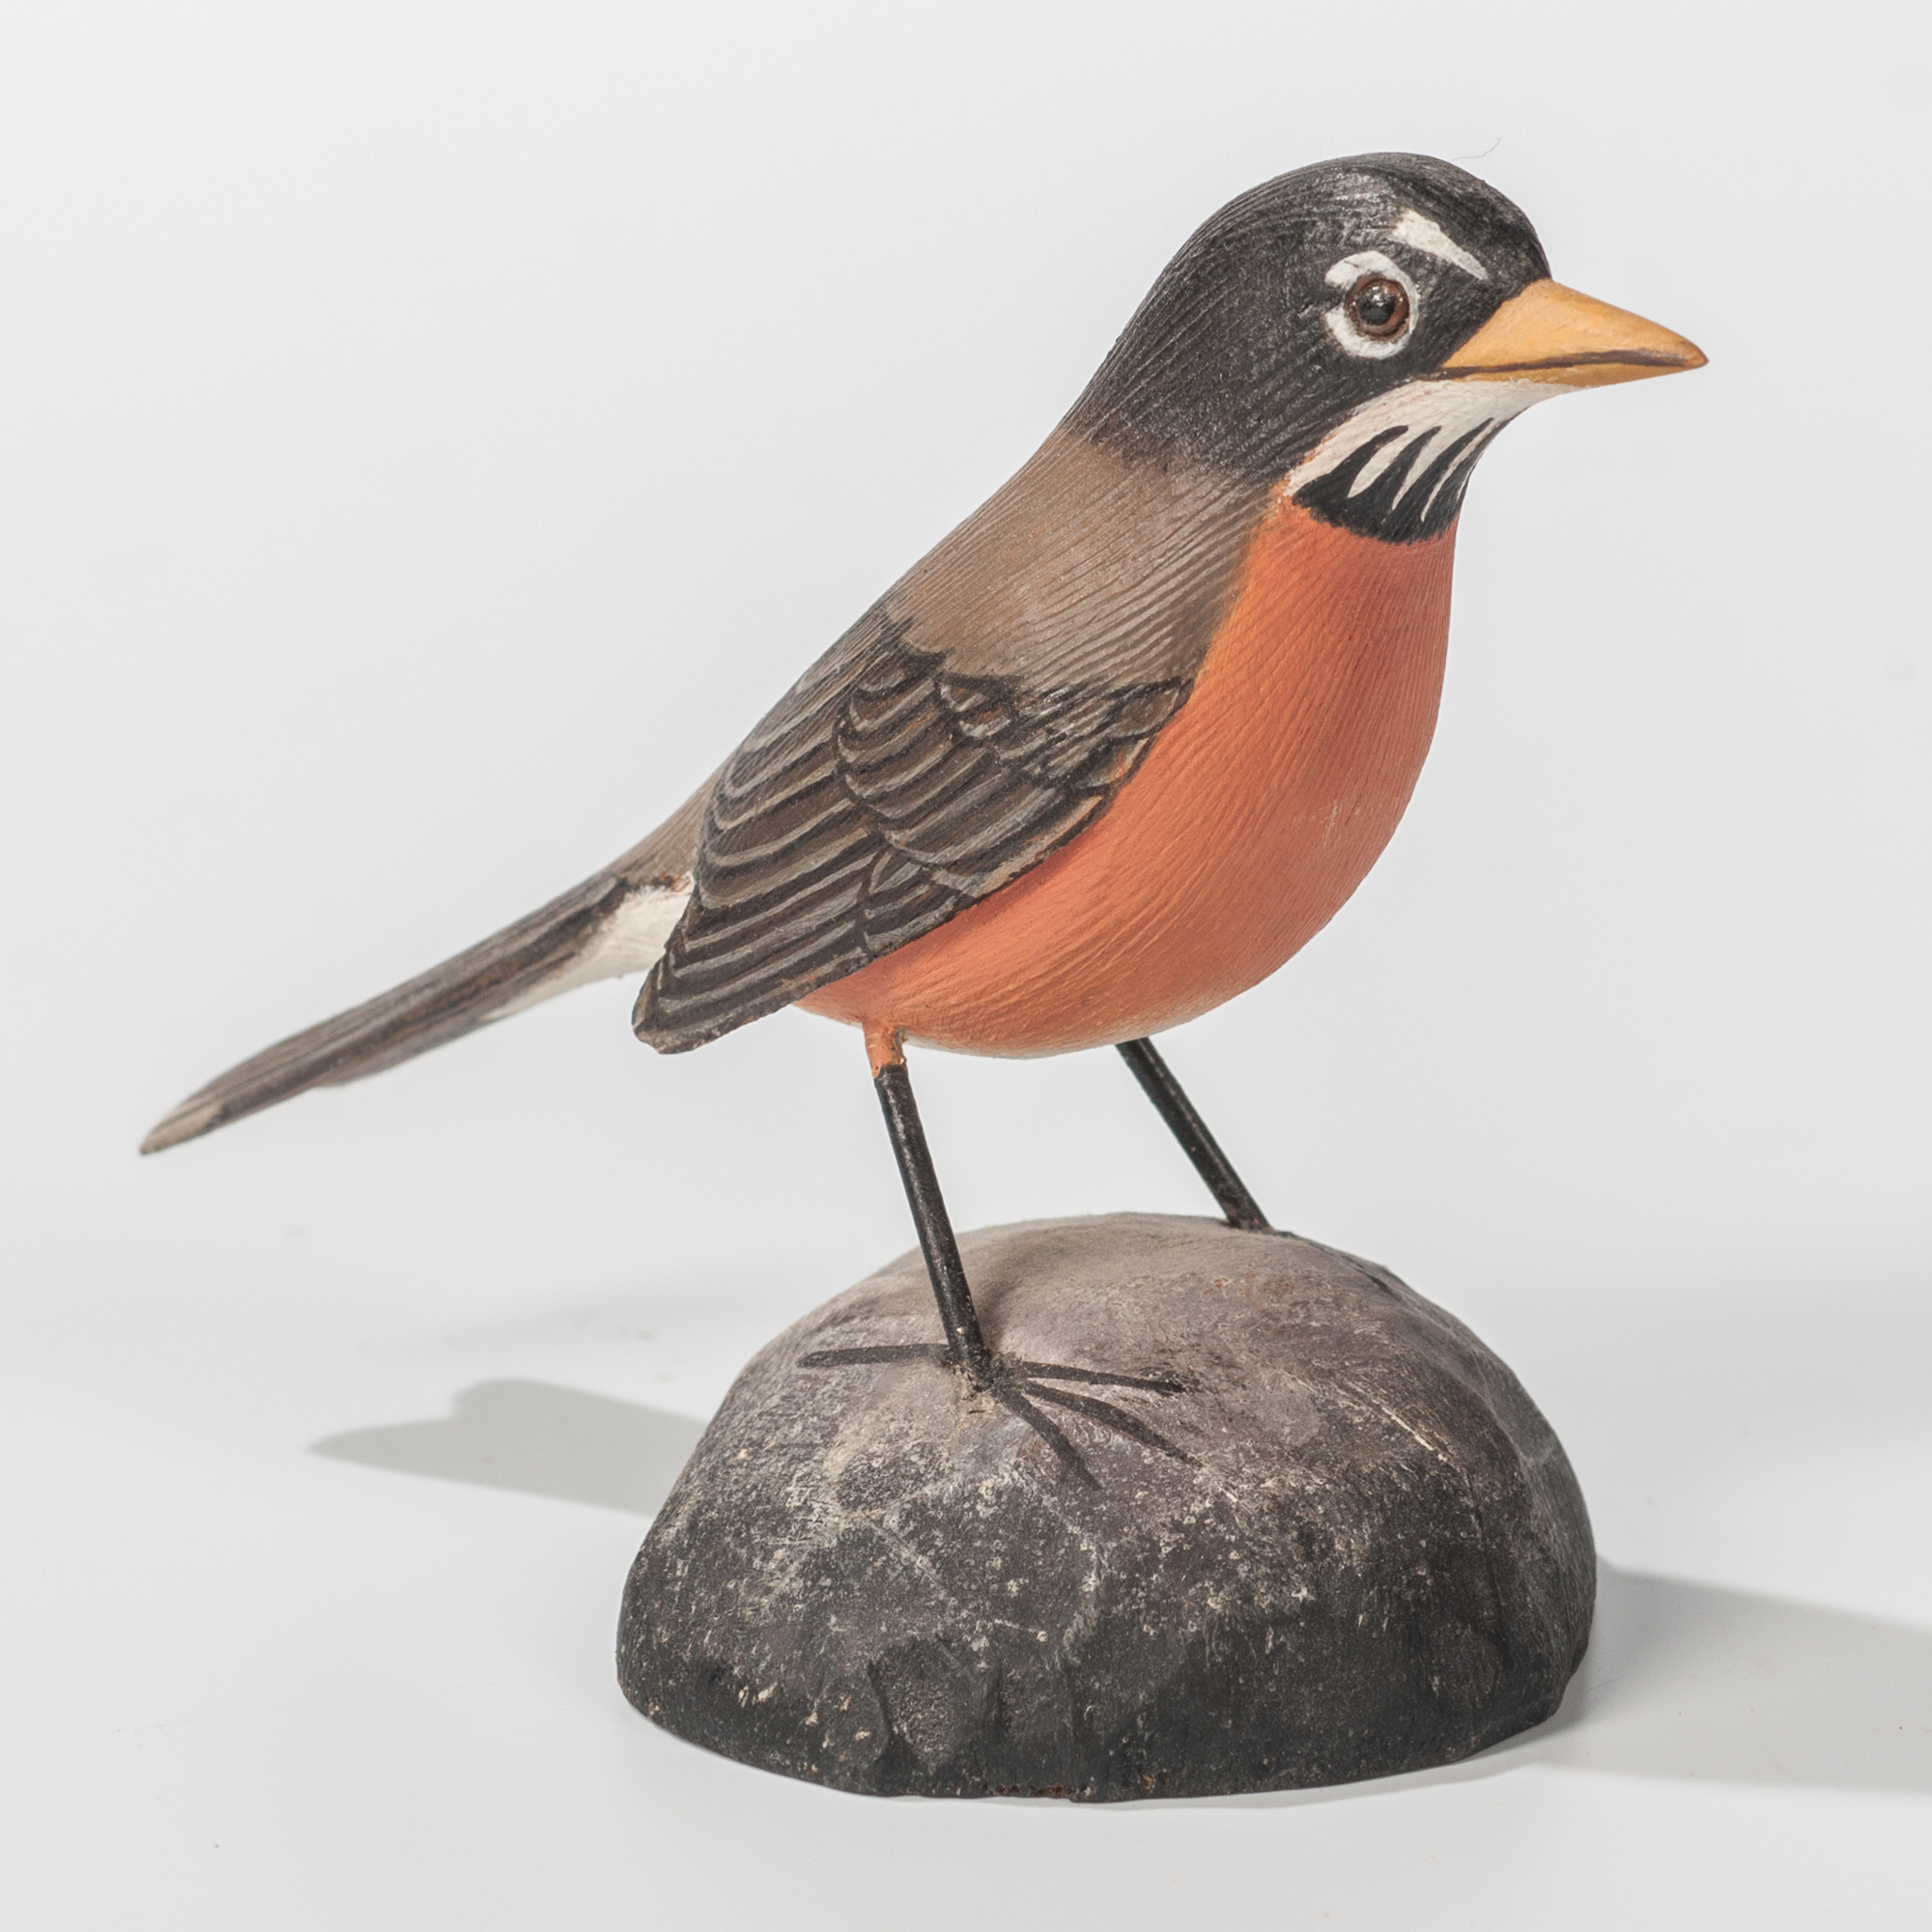 A miniature robin, carved and painted by Jess Blackstone circa 1968 or 1969.